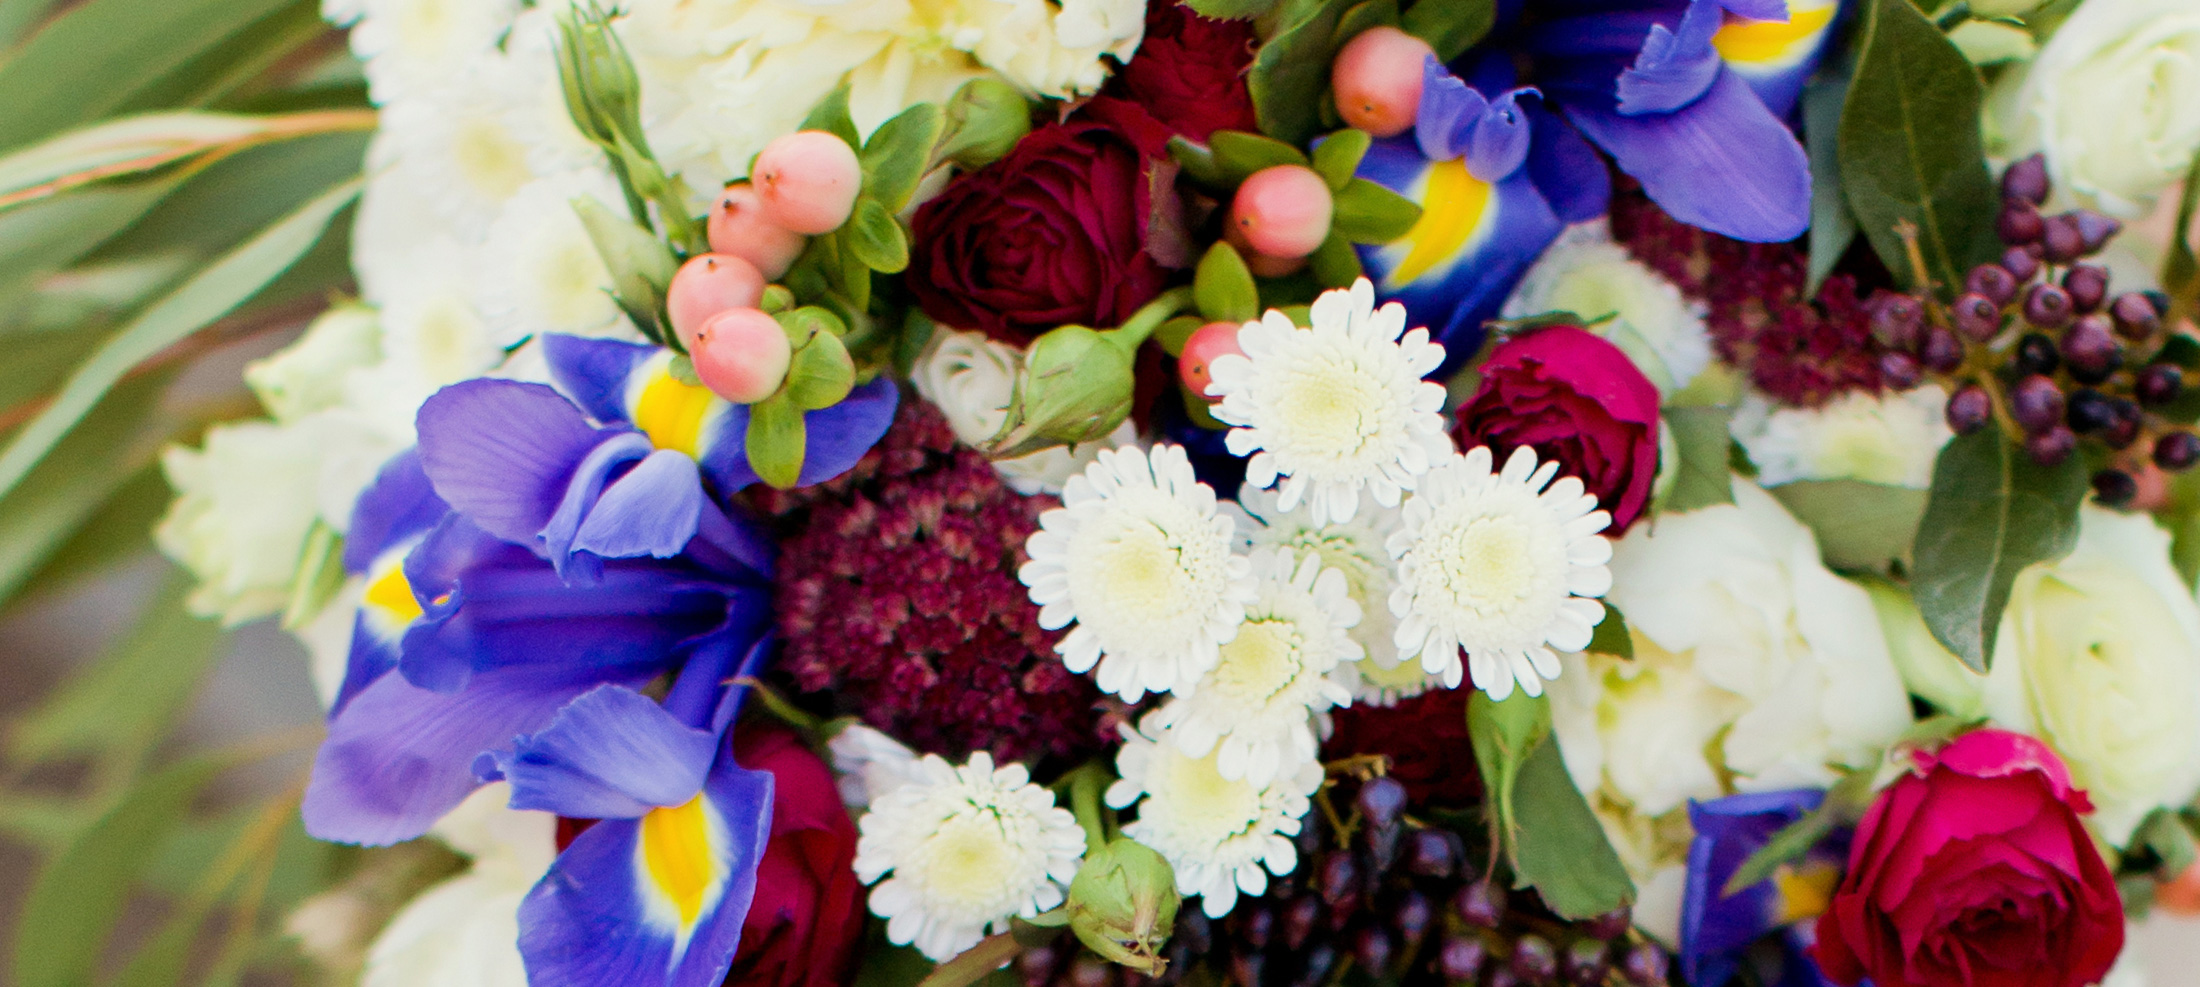 Orlando Florist | Flower Delivery by Edgewood Flowers